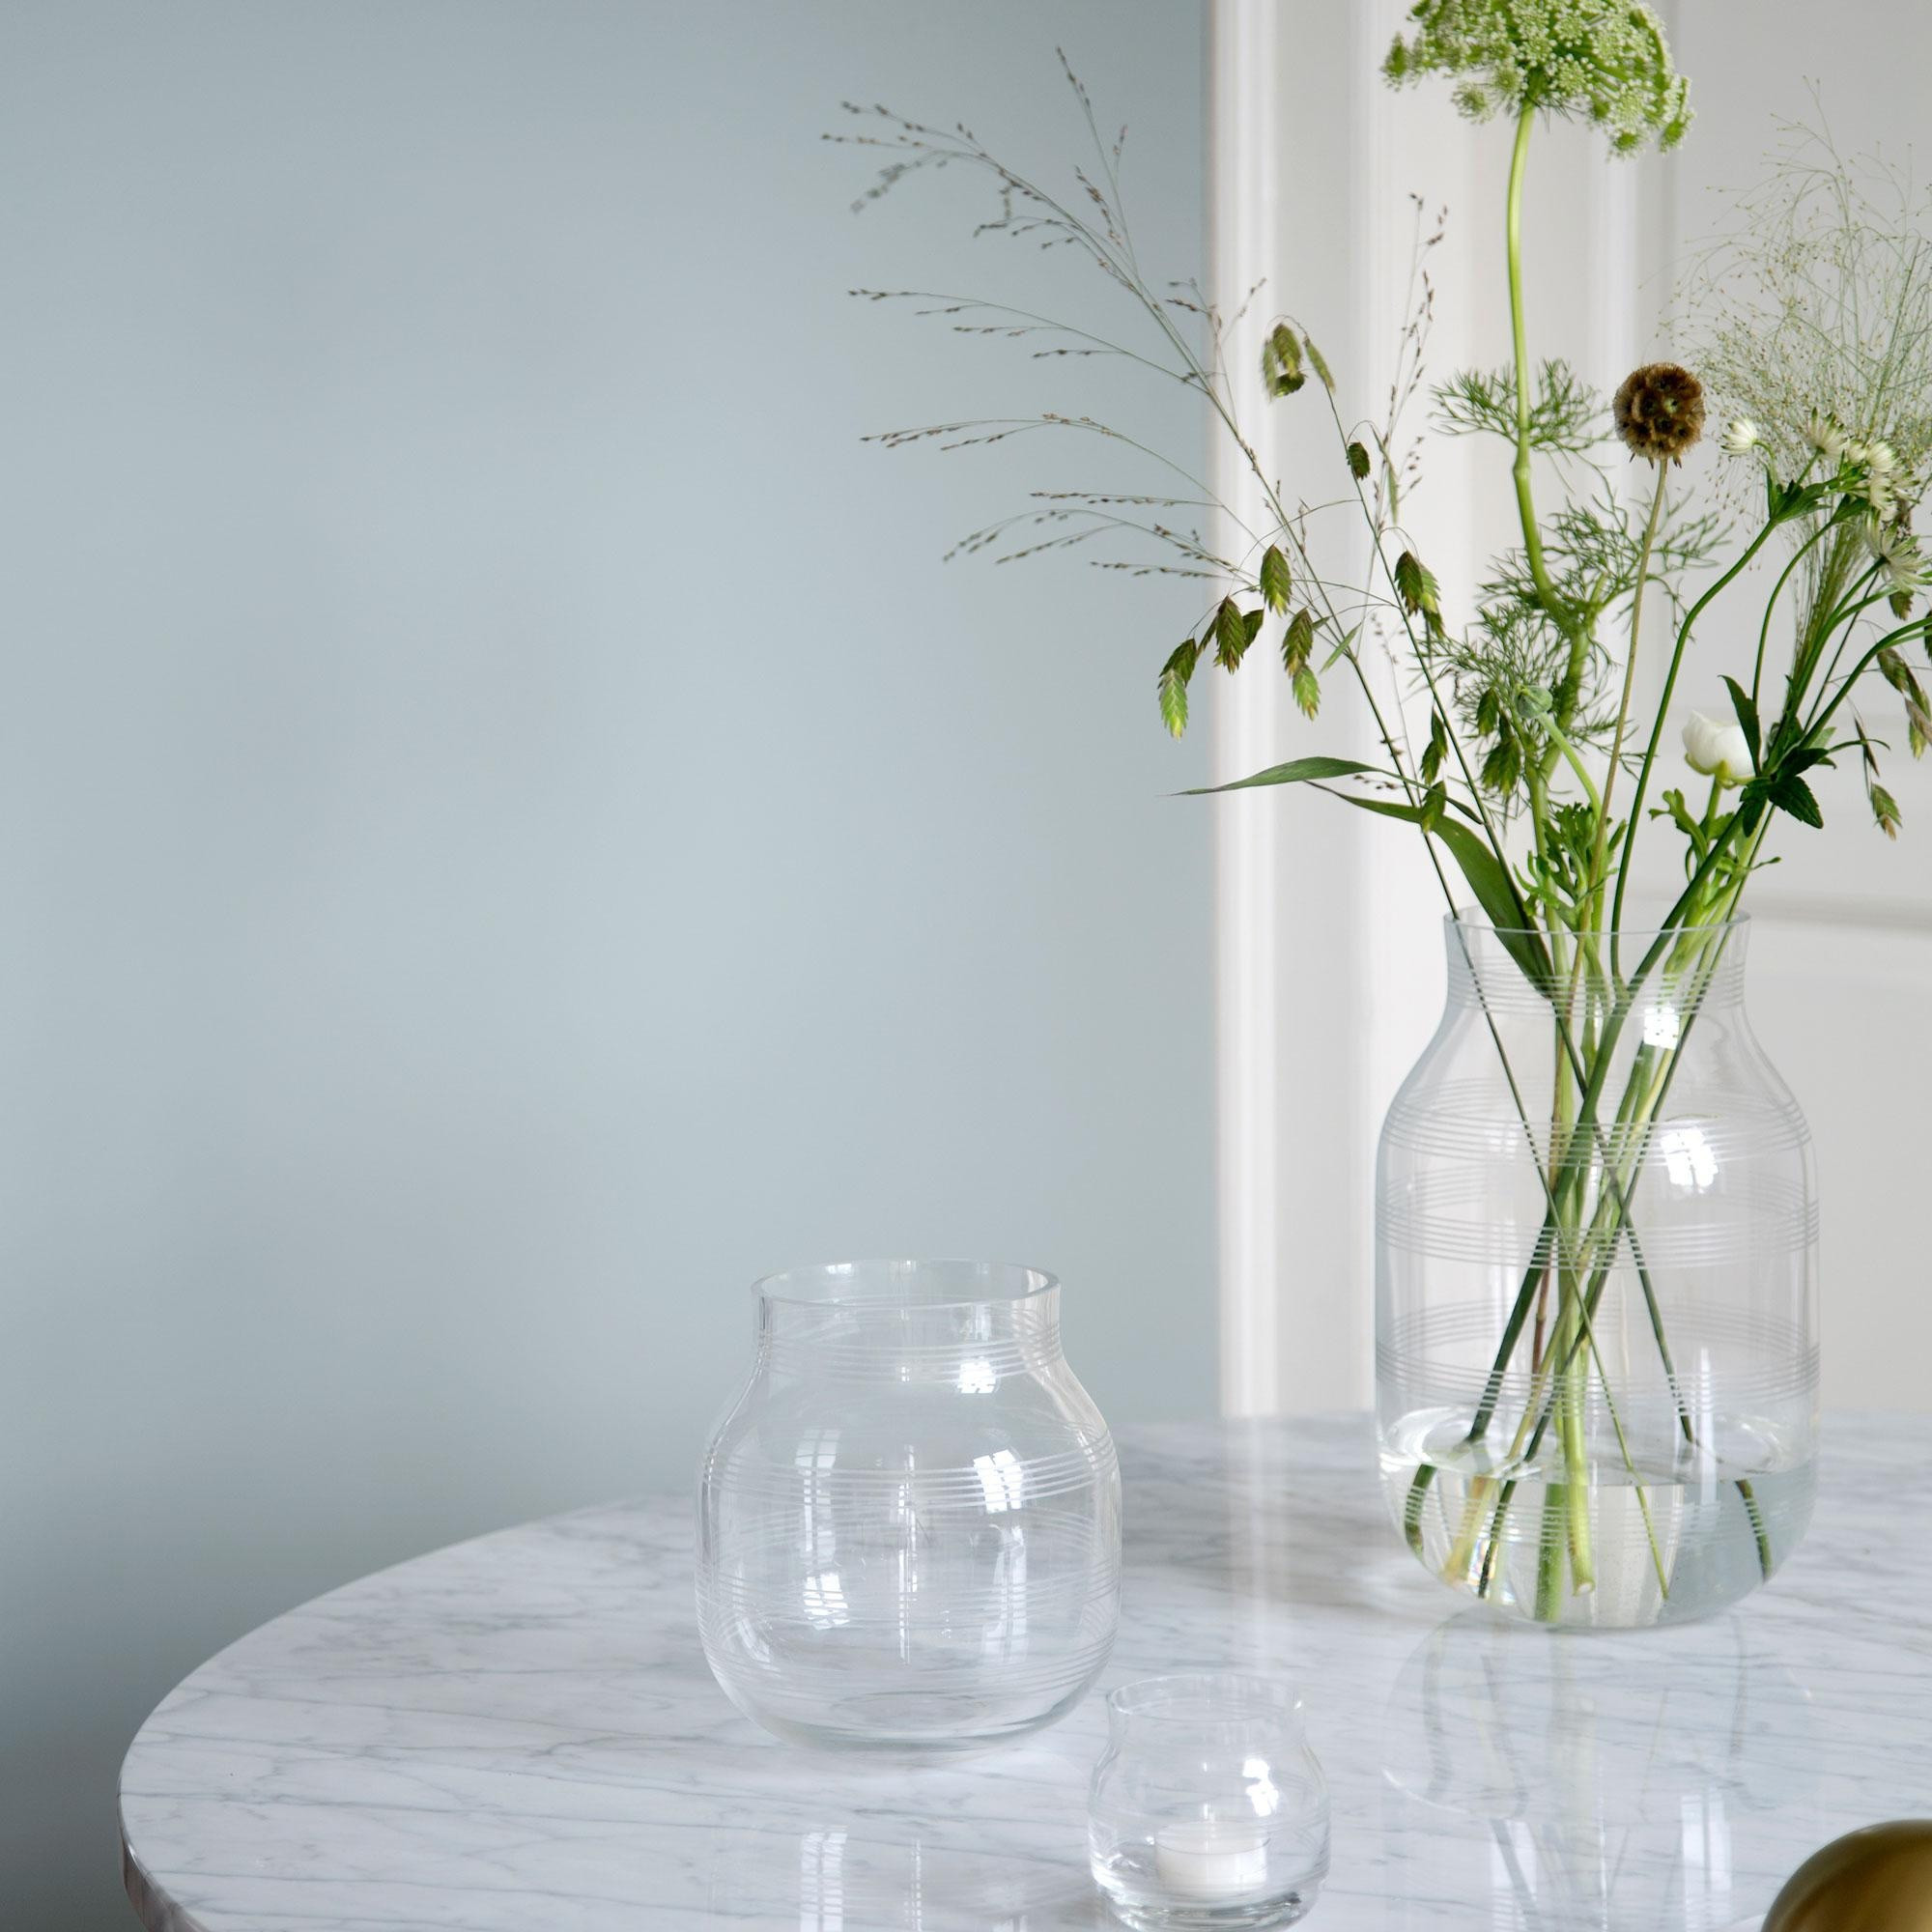 swedish glass vase of ka¤hler omaggio glass vase h 17cm ambientedirect in all prices including vat plus shipping cost